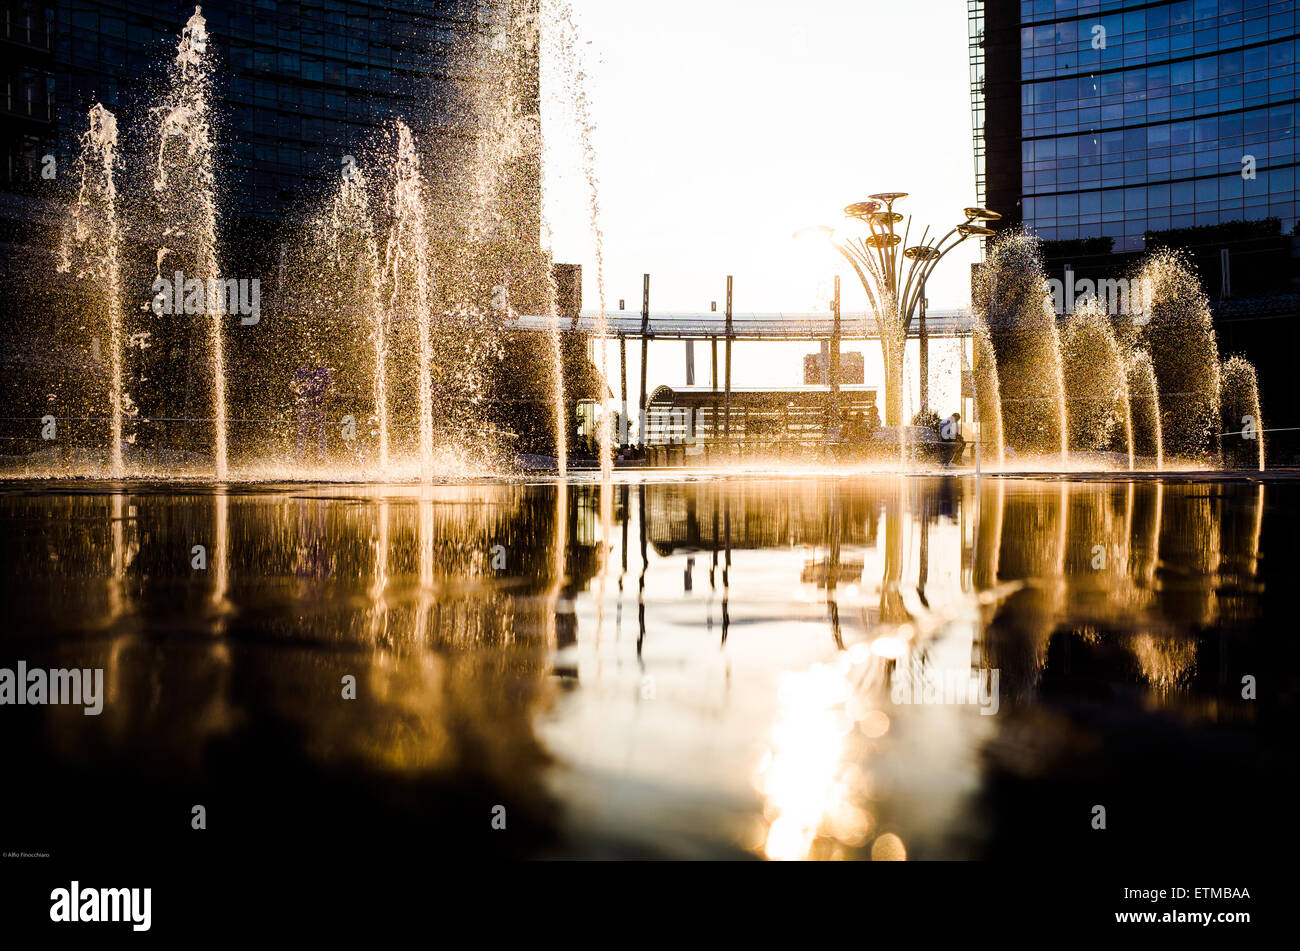 Many fountains splashing water over the square in Milan, Porta Nuova, Italy - Stock Image